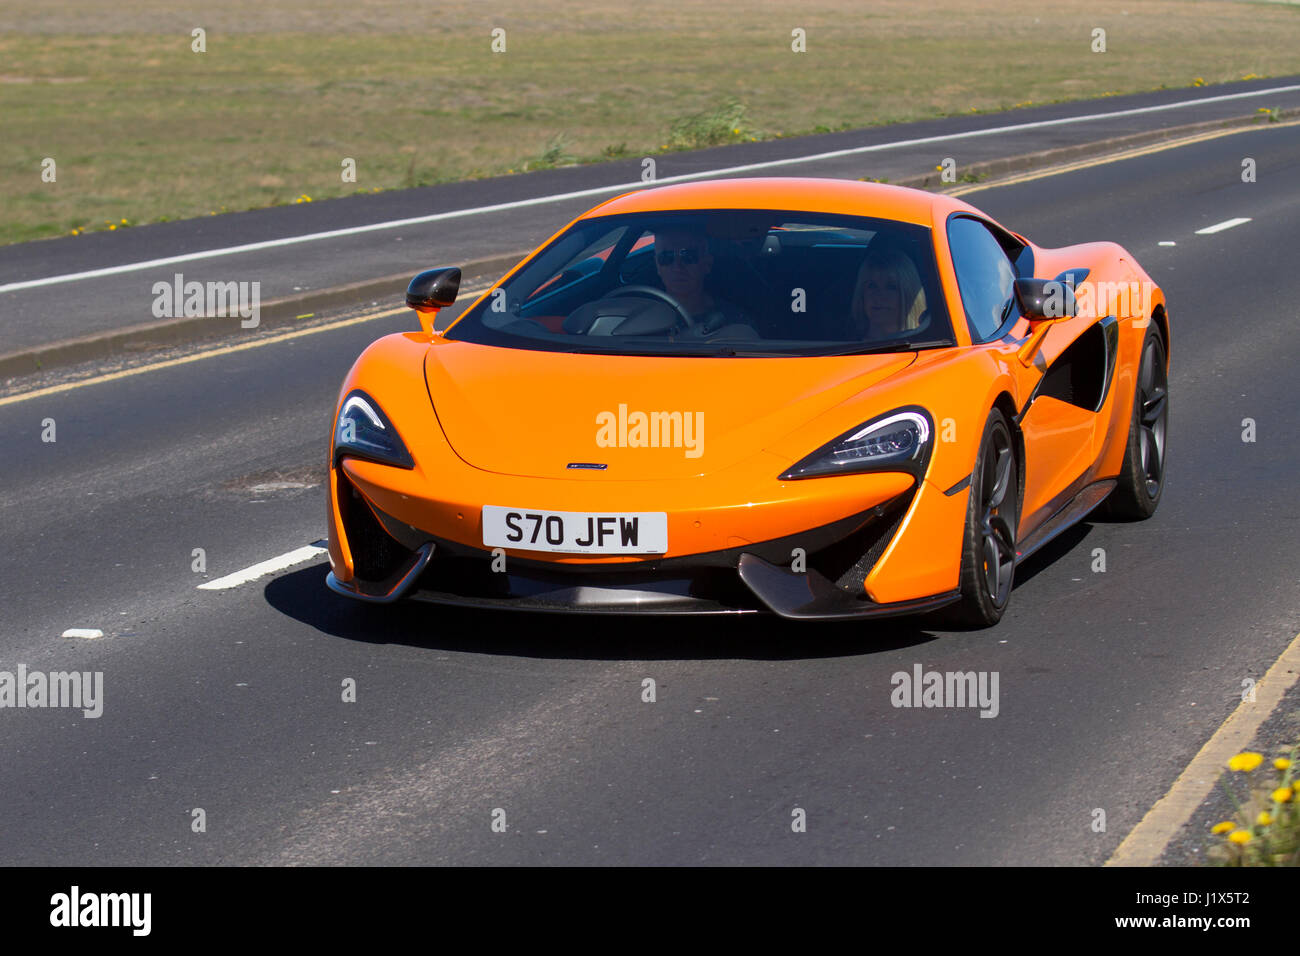 orange 2017 mclaren 570s coupe auto, priced from £143,000, driving